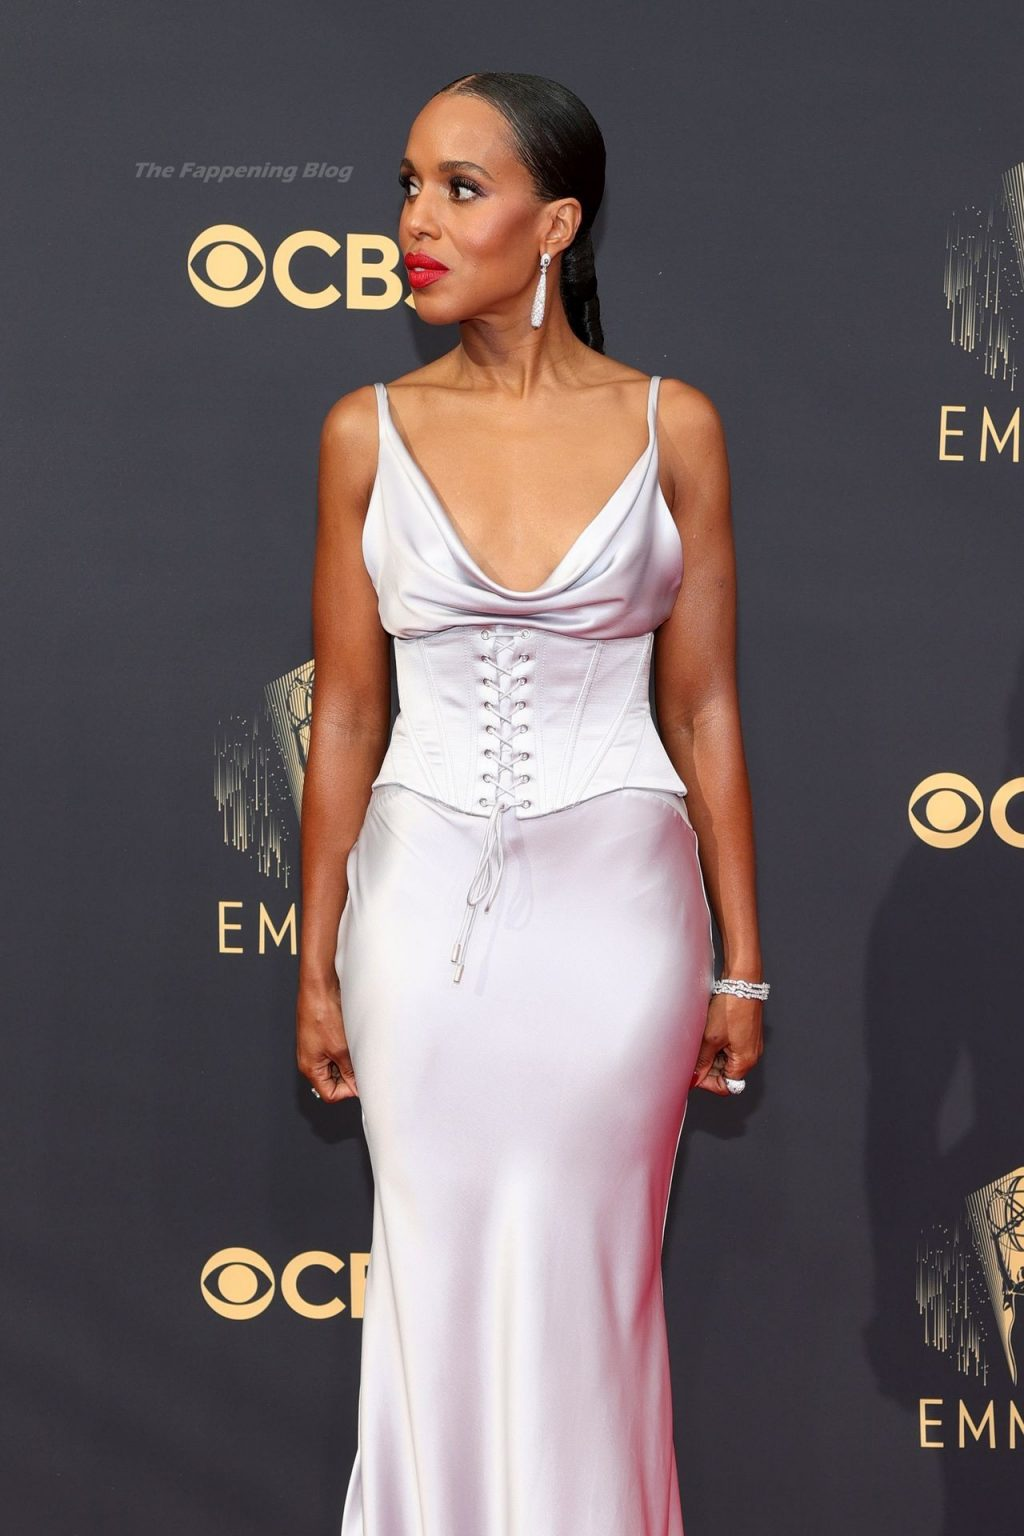 Kerry Washington is Seen Braless at the 73rd Primetime Emmy Awards in Los Angeles (15 Photos)